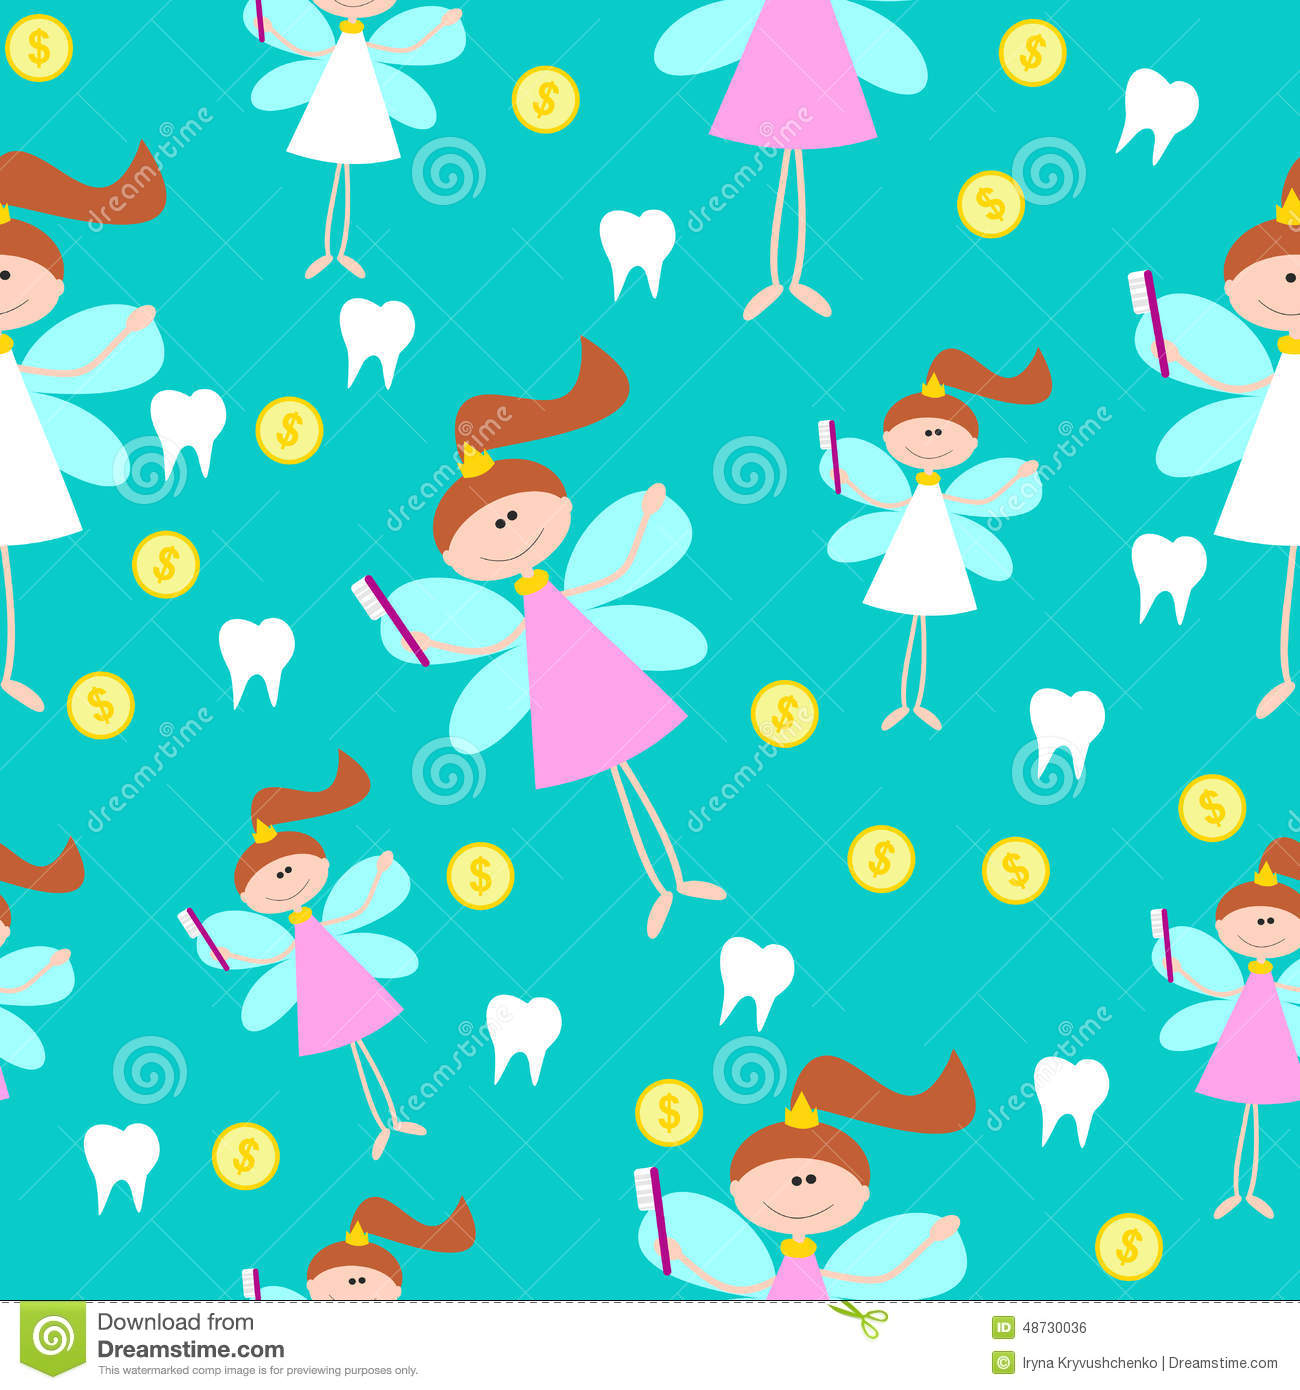 Cute Baby Angel Wallpaper Seamless Pattern With Little Cute Tooth Fairy With Teeth